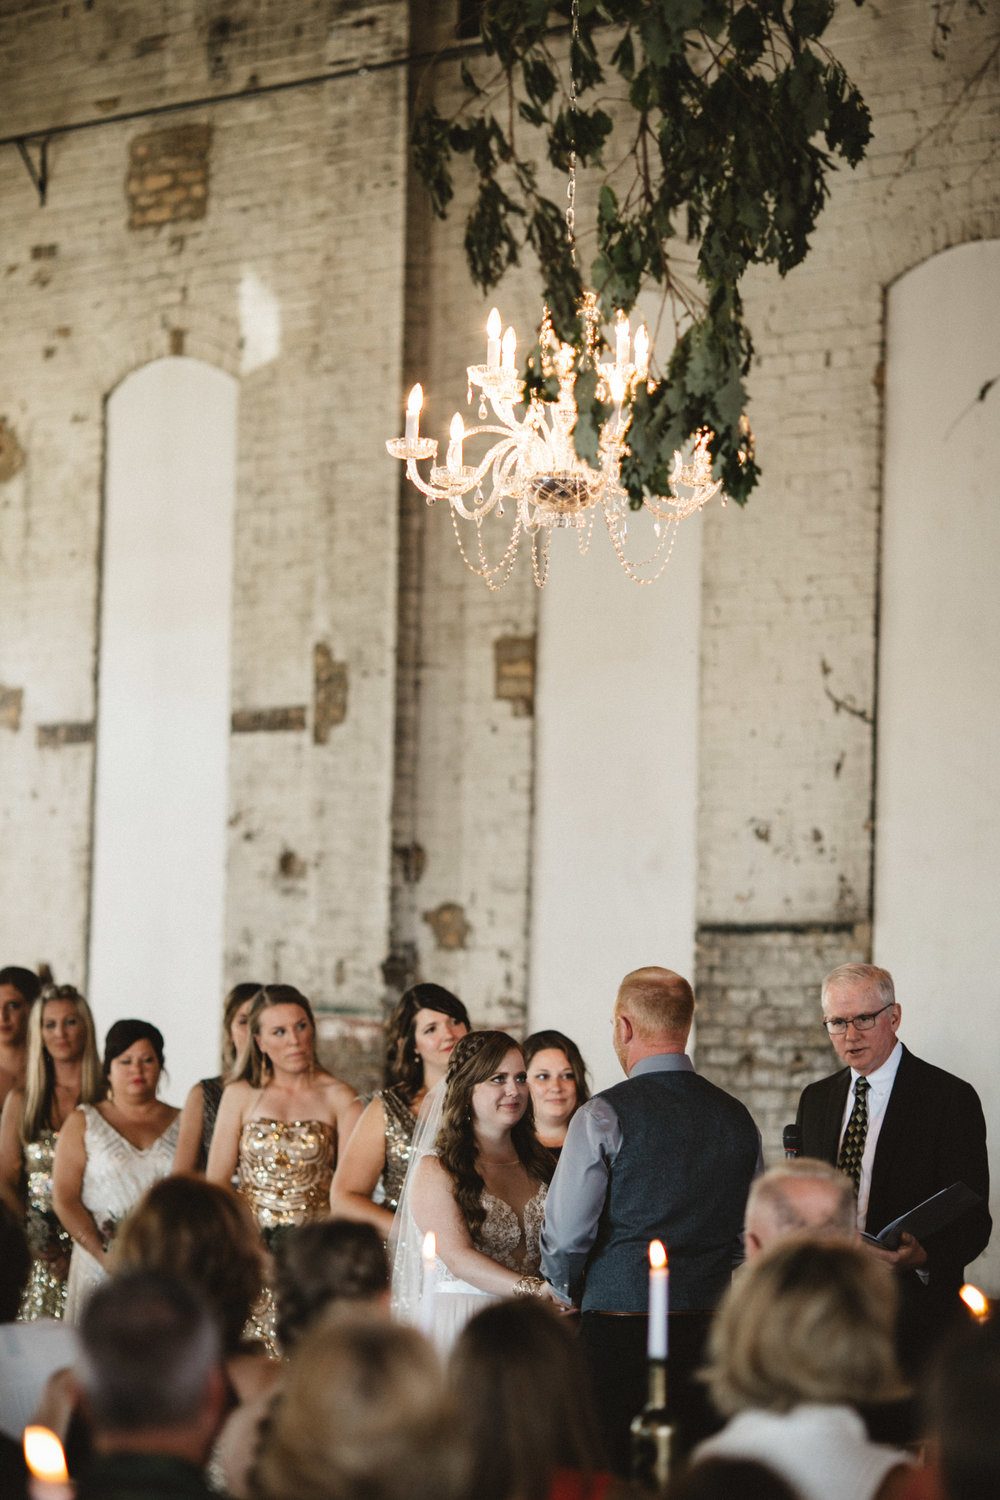 Indoor ceremony at the NP Event Space, photography by Britt DeZeeuw